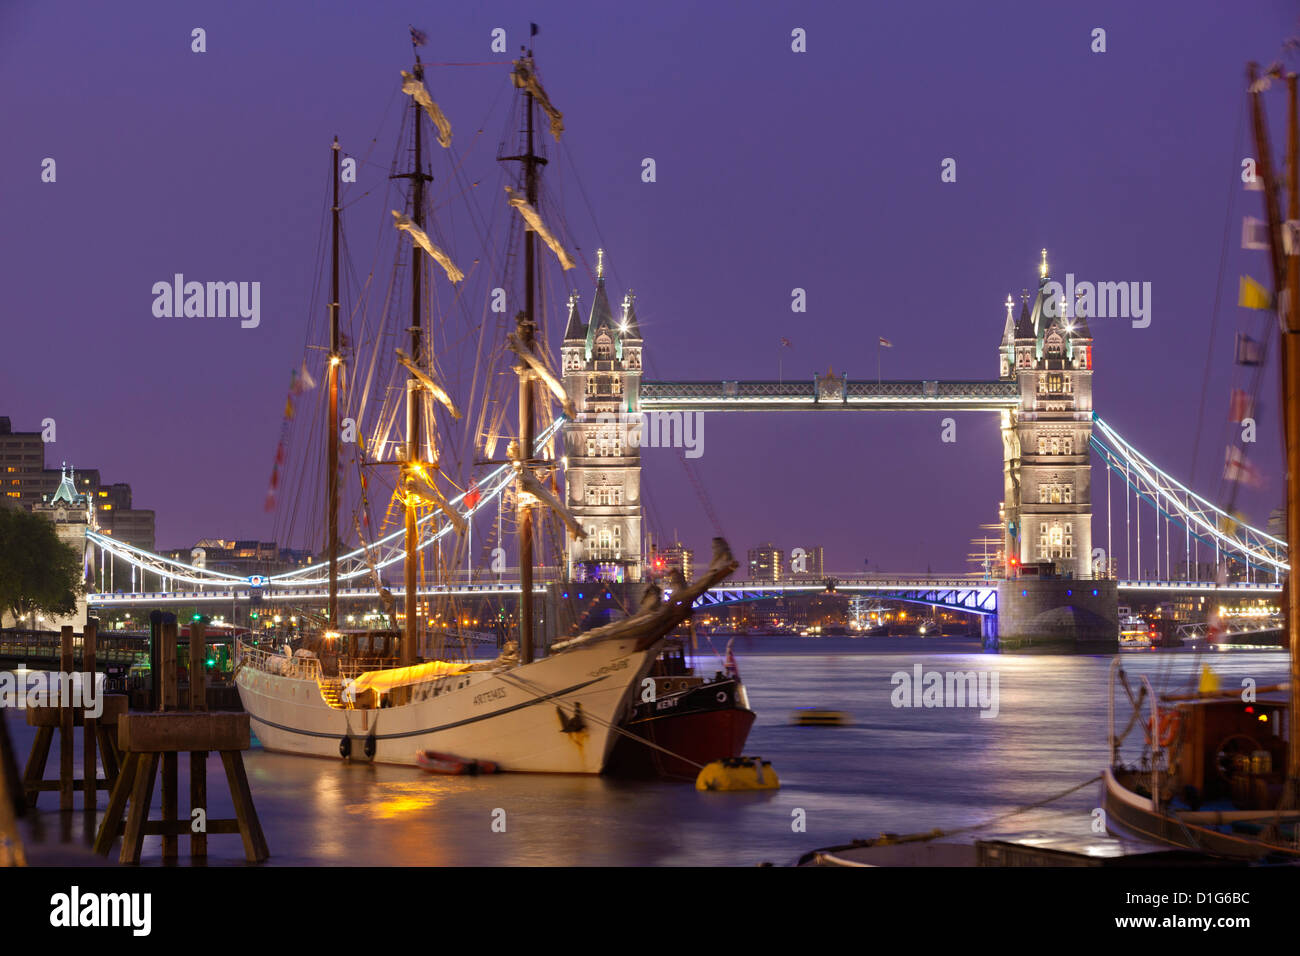 Tower Bridge and tall ships on River Thames, London, England, United Kingdom, Europe - Stock Image